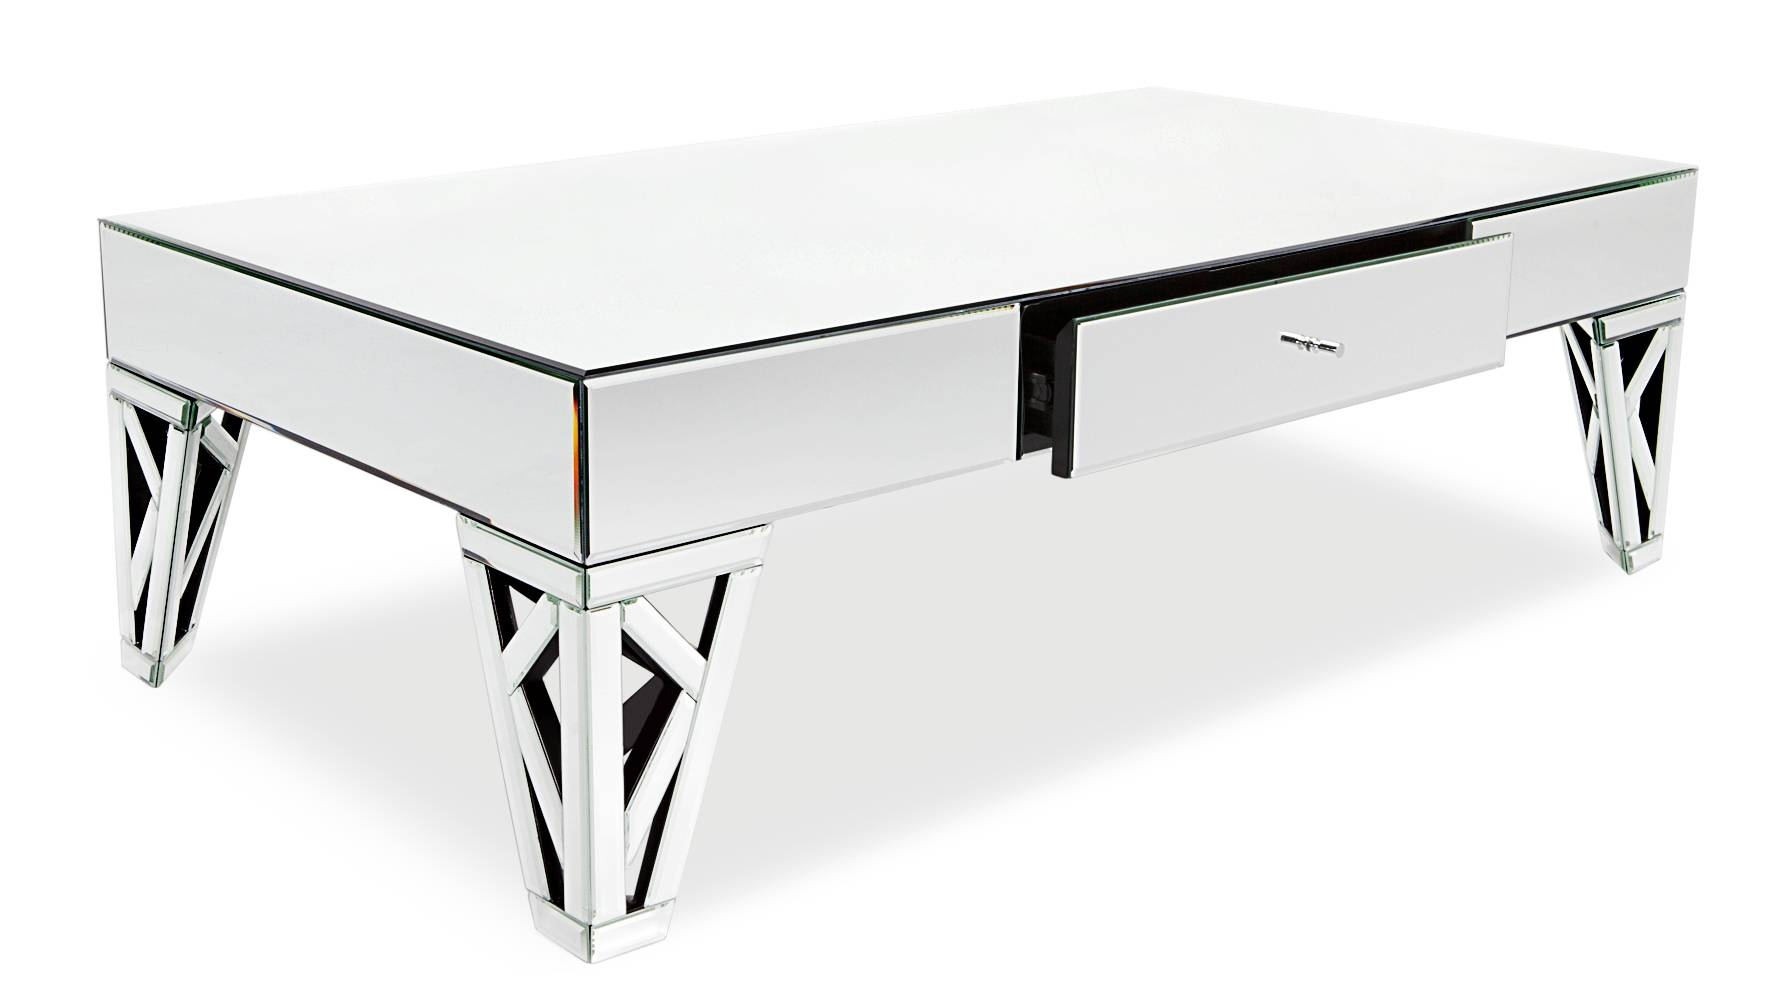 Azure Mirrored Glass Coffee Table | Zuri Furniture regarding Mirrored Coffee Tables (Image 1 of 30)